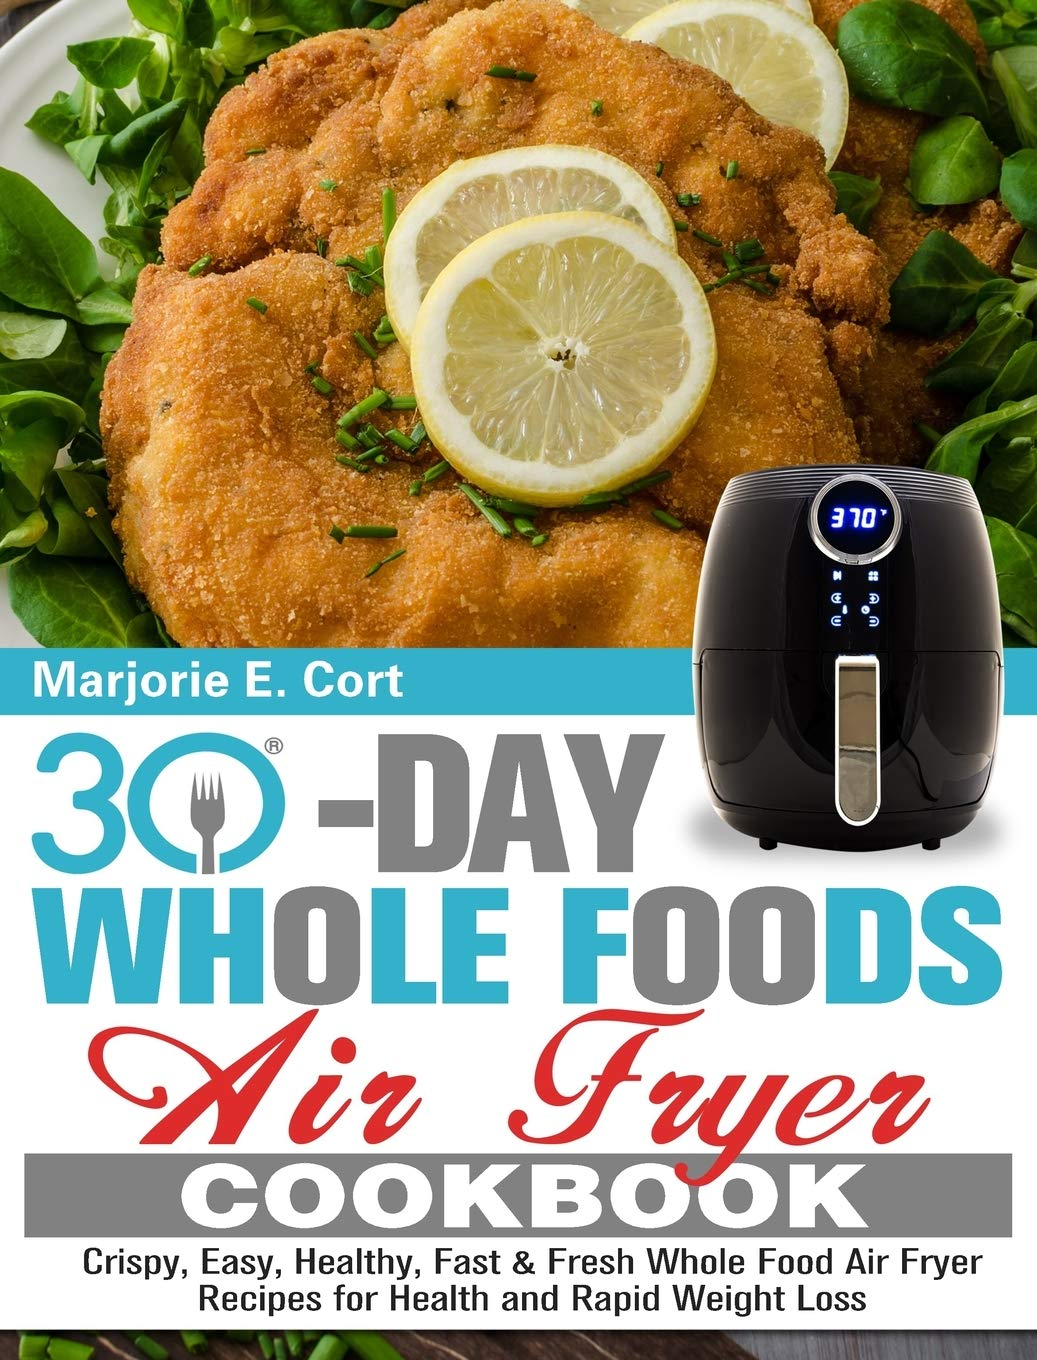 30 Day Whole Food Air Fryer Cookbook: Crispy, Easy, Healthy, Fast & Fresh Whole Food Air Fryer Recipes for Health and Rapid Weight Loss 1